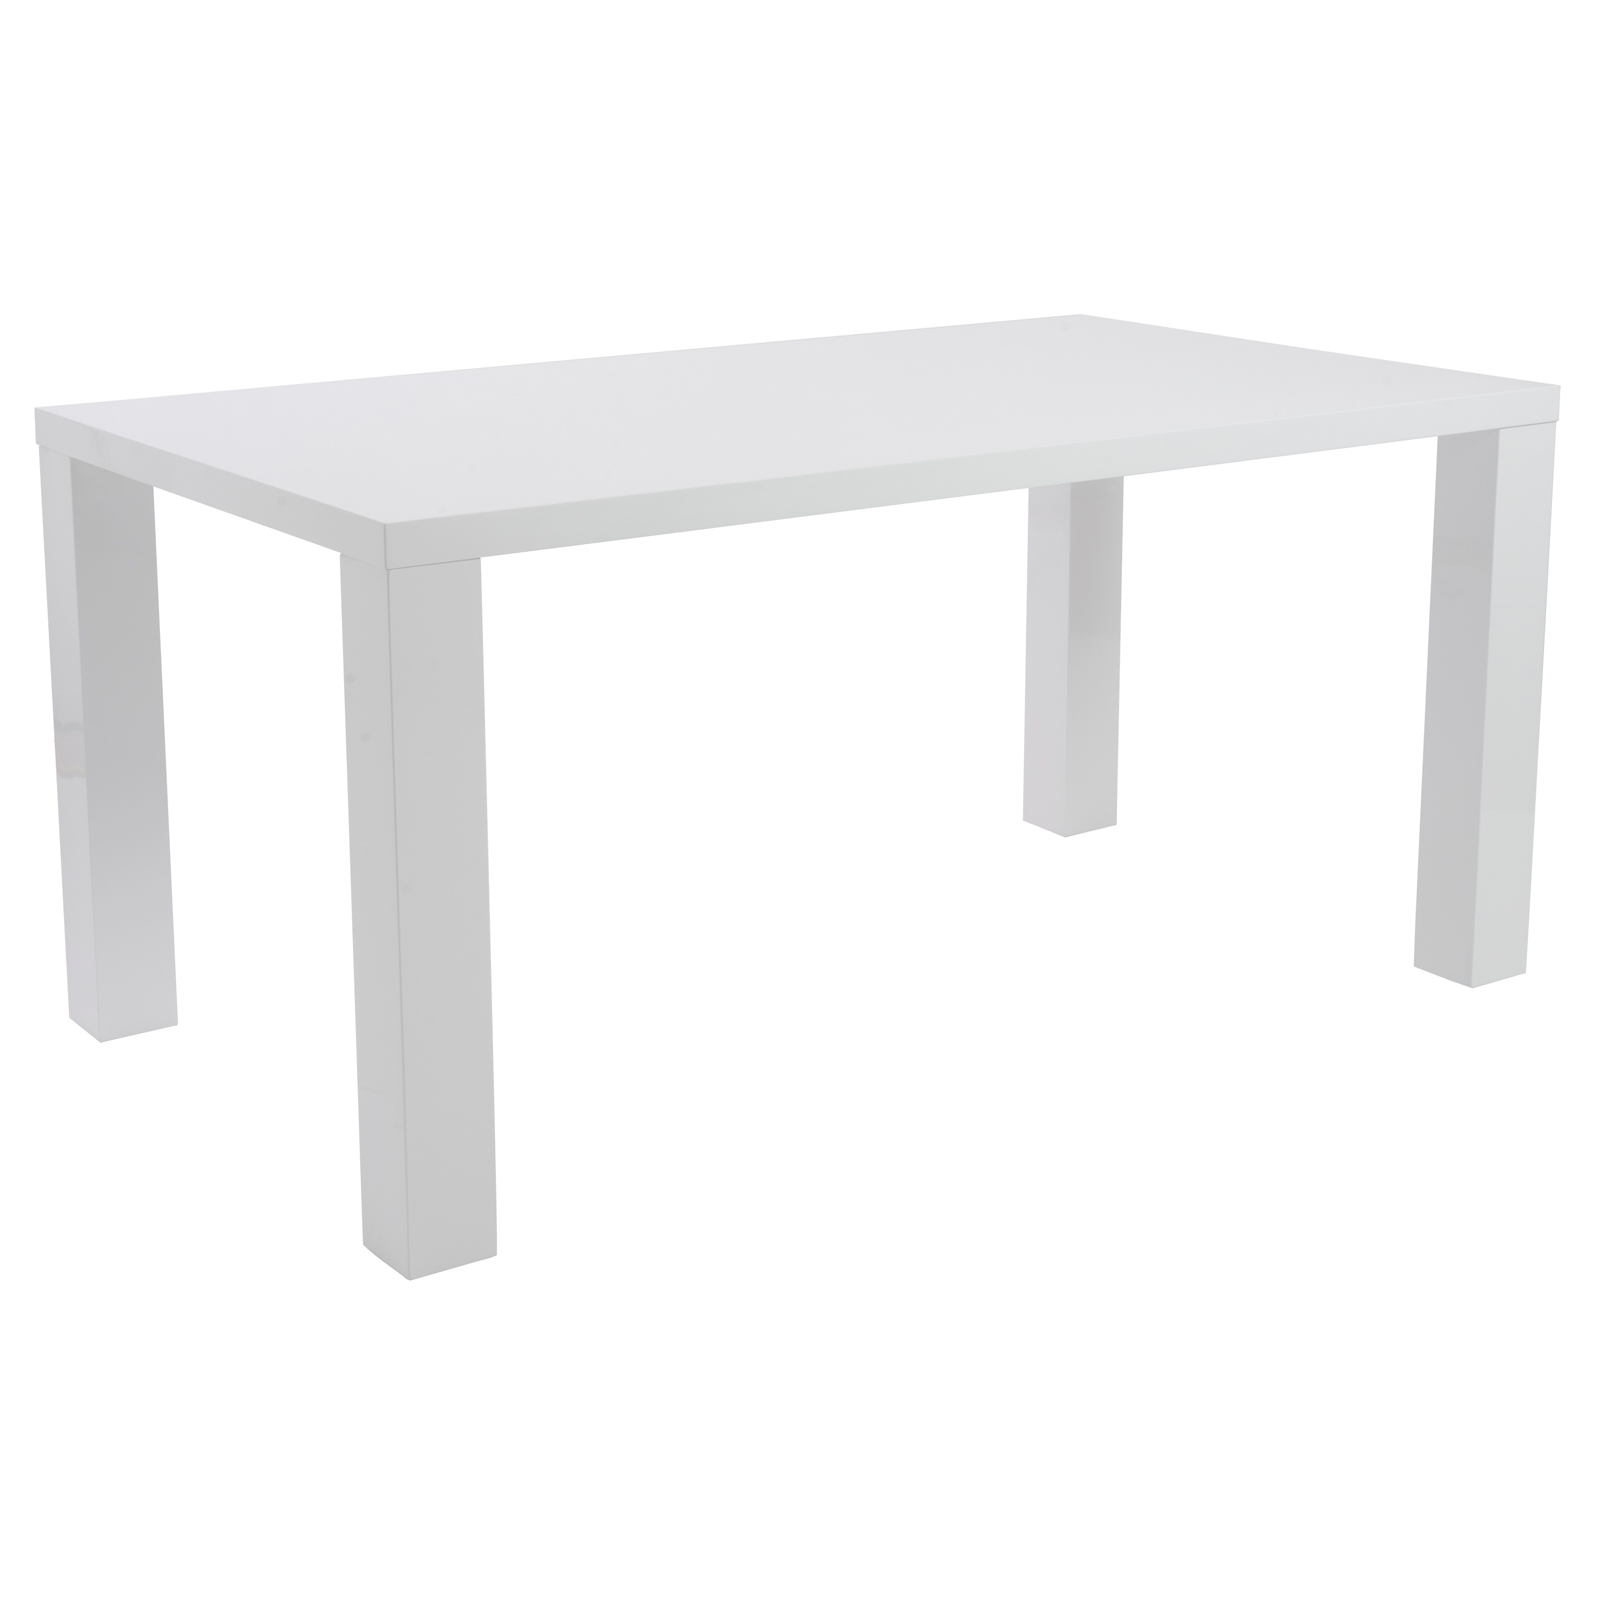 Parsons Dining Table Rectangle Event Trade Show Furniture Rental Formdecor